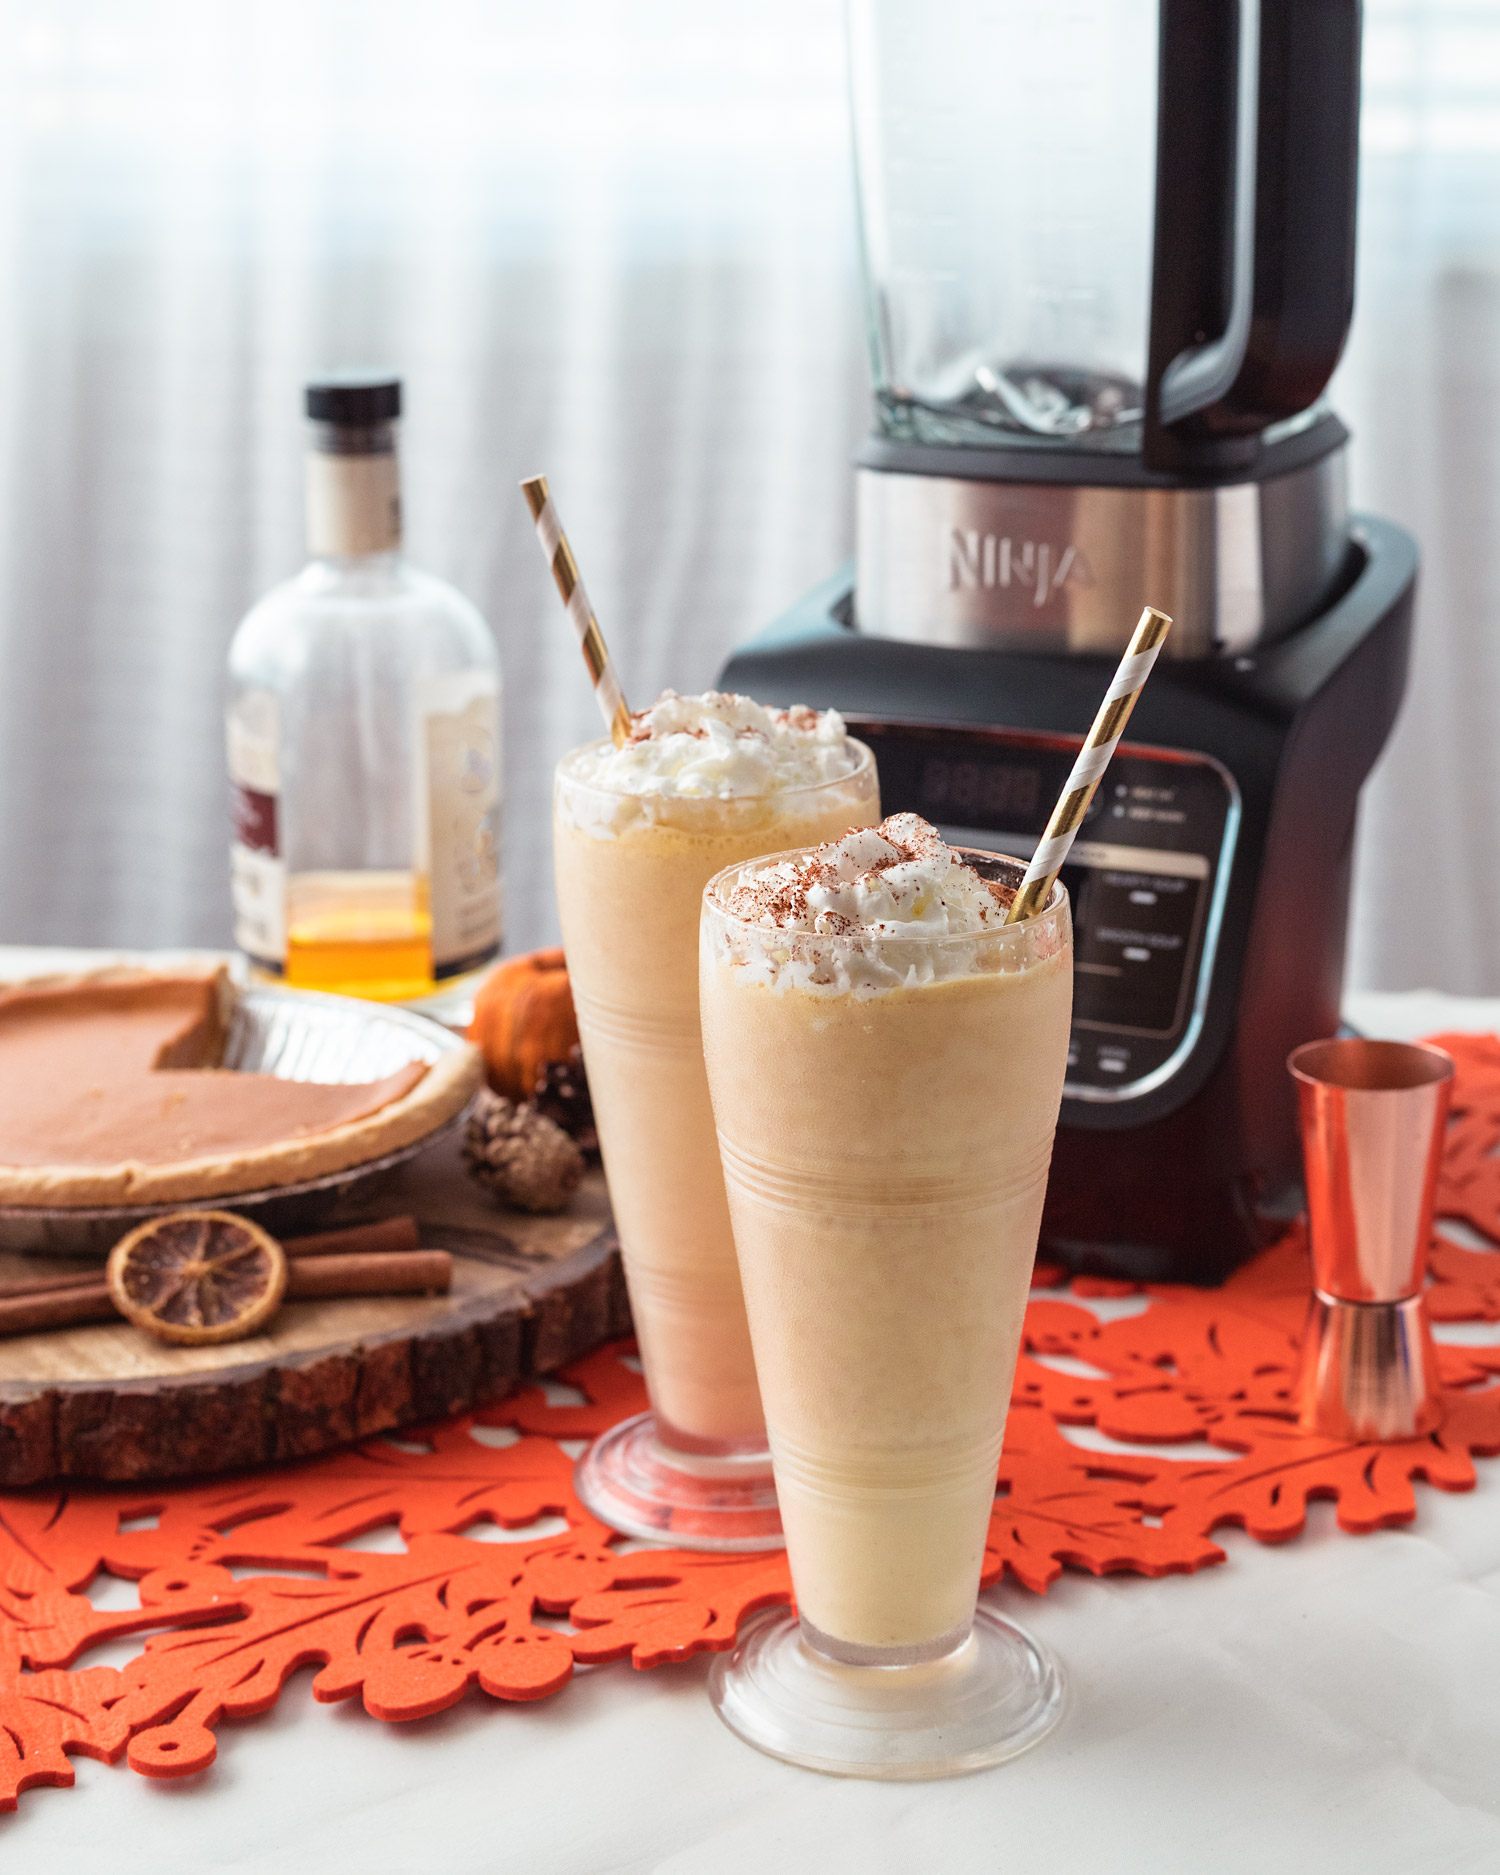 What to do with leftover pumpkin pie? Make these Bourbon Pumpkin Pie Boozy Milkshakes! This is also a great way to use leftover pecan pie too! #ElleTalk #Leftovers #pumpkinpie #pecanpie #bourbon #BoozyTreats #Milkshake #Dessert